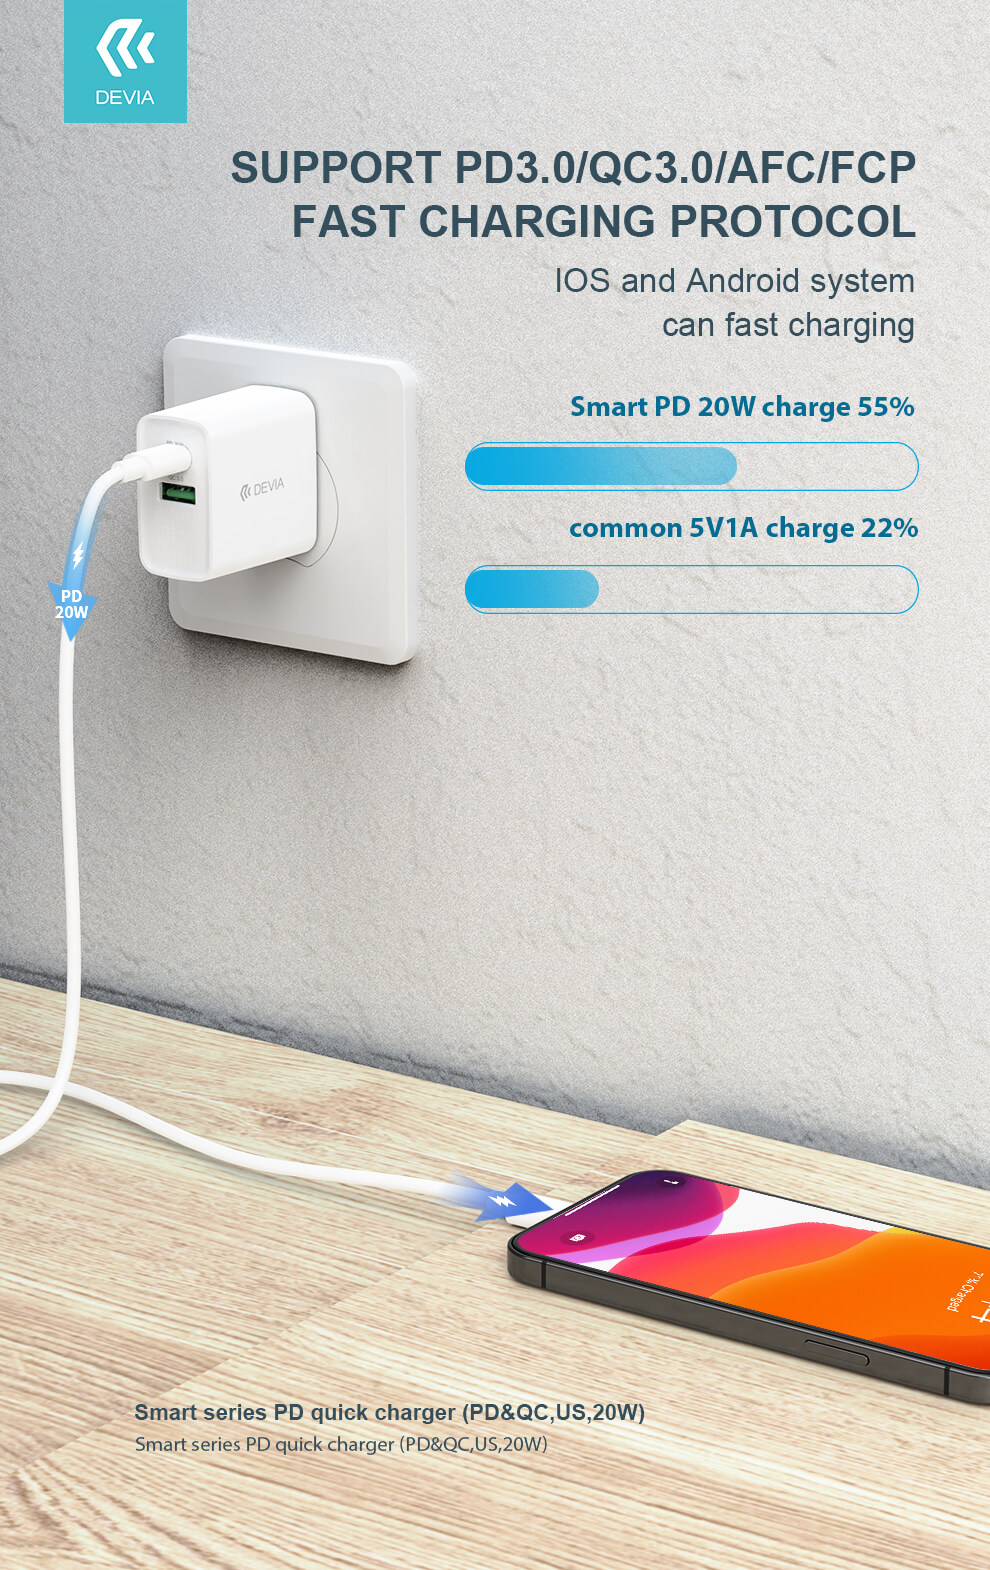 PD quick charger information